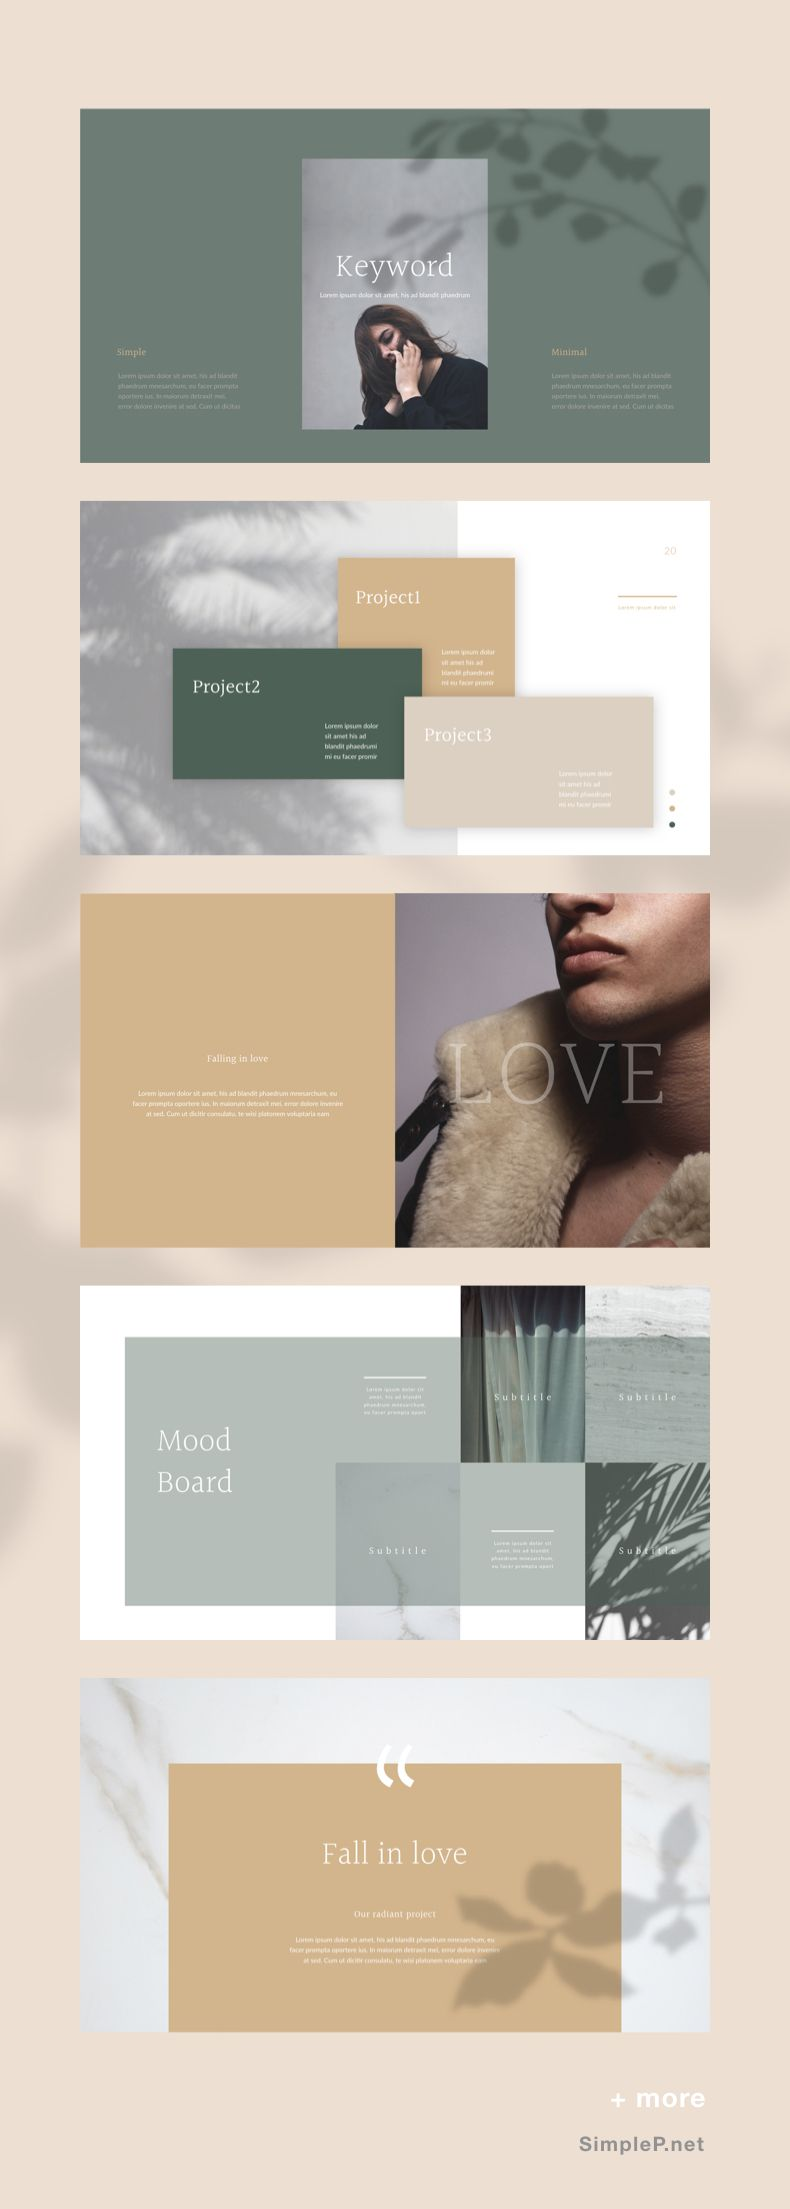 glory presentation powerpoint template keyword mood board love